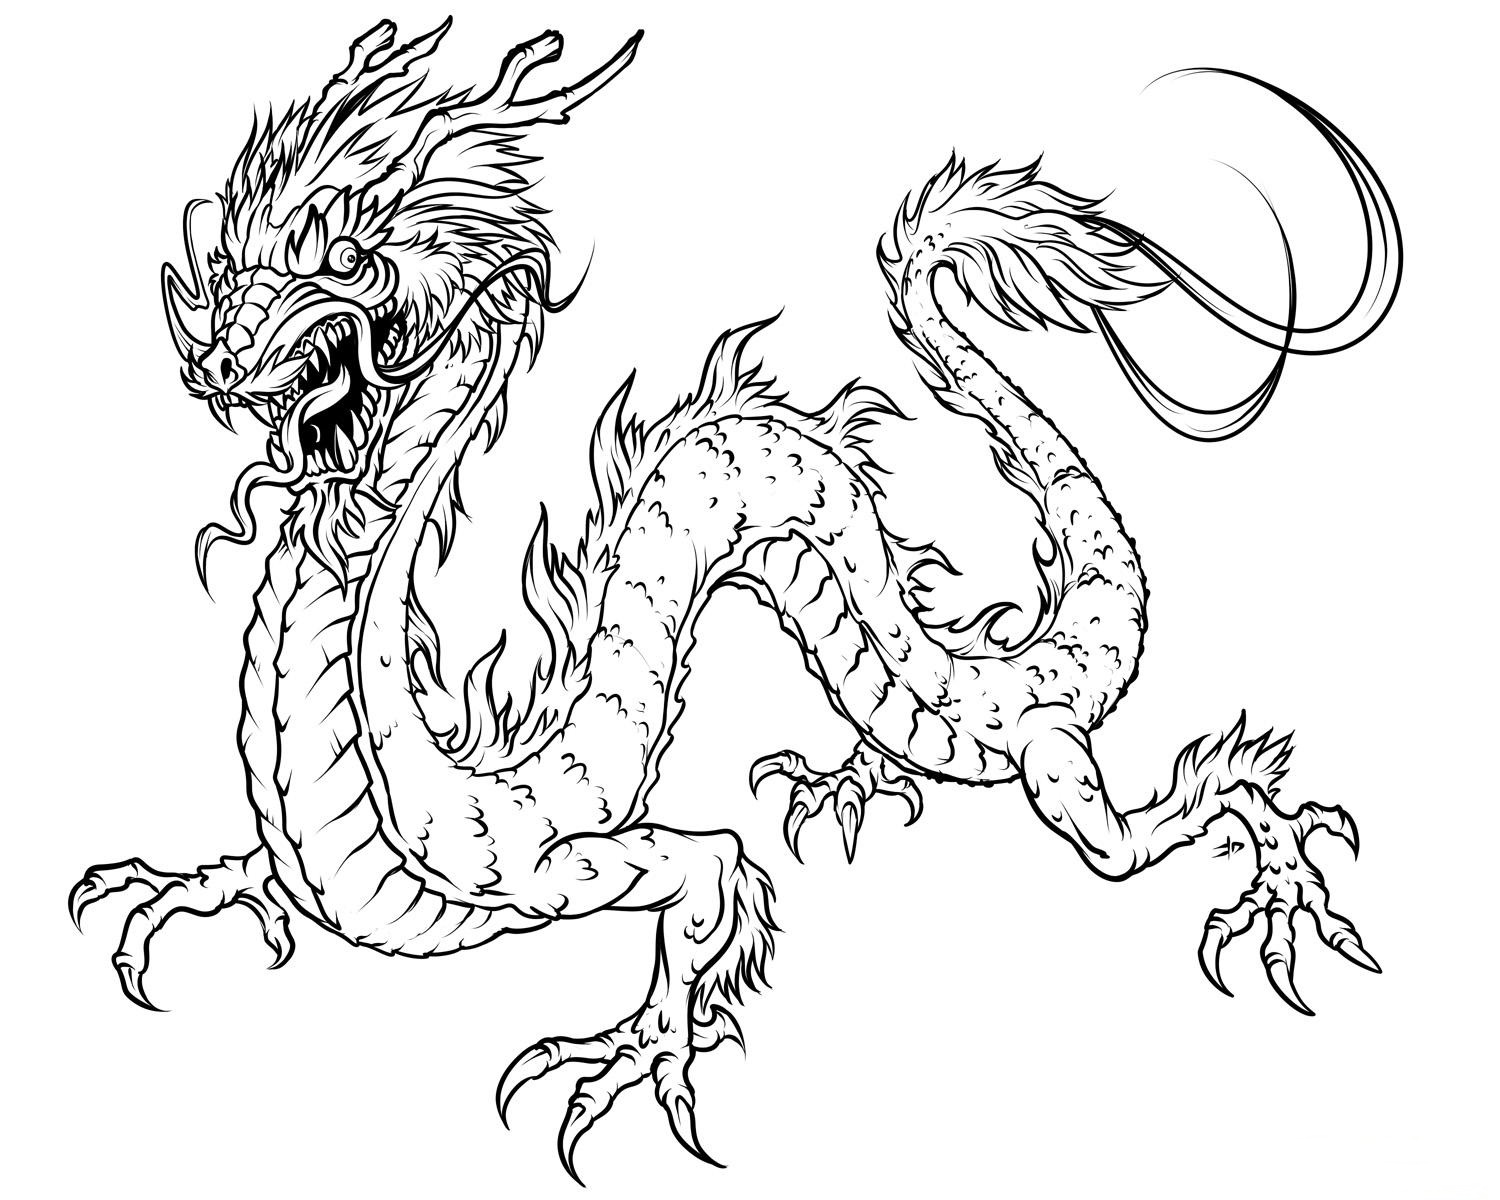 chinesse dragon coloring pages - photo#24